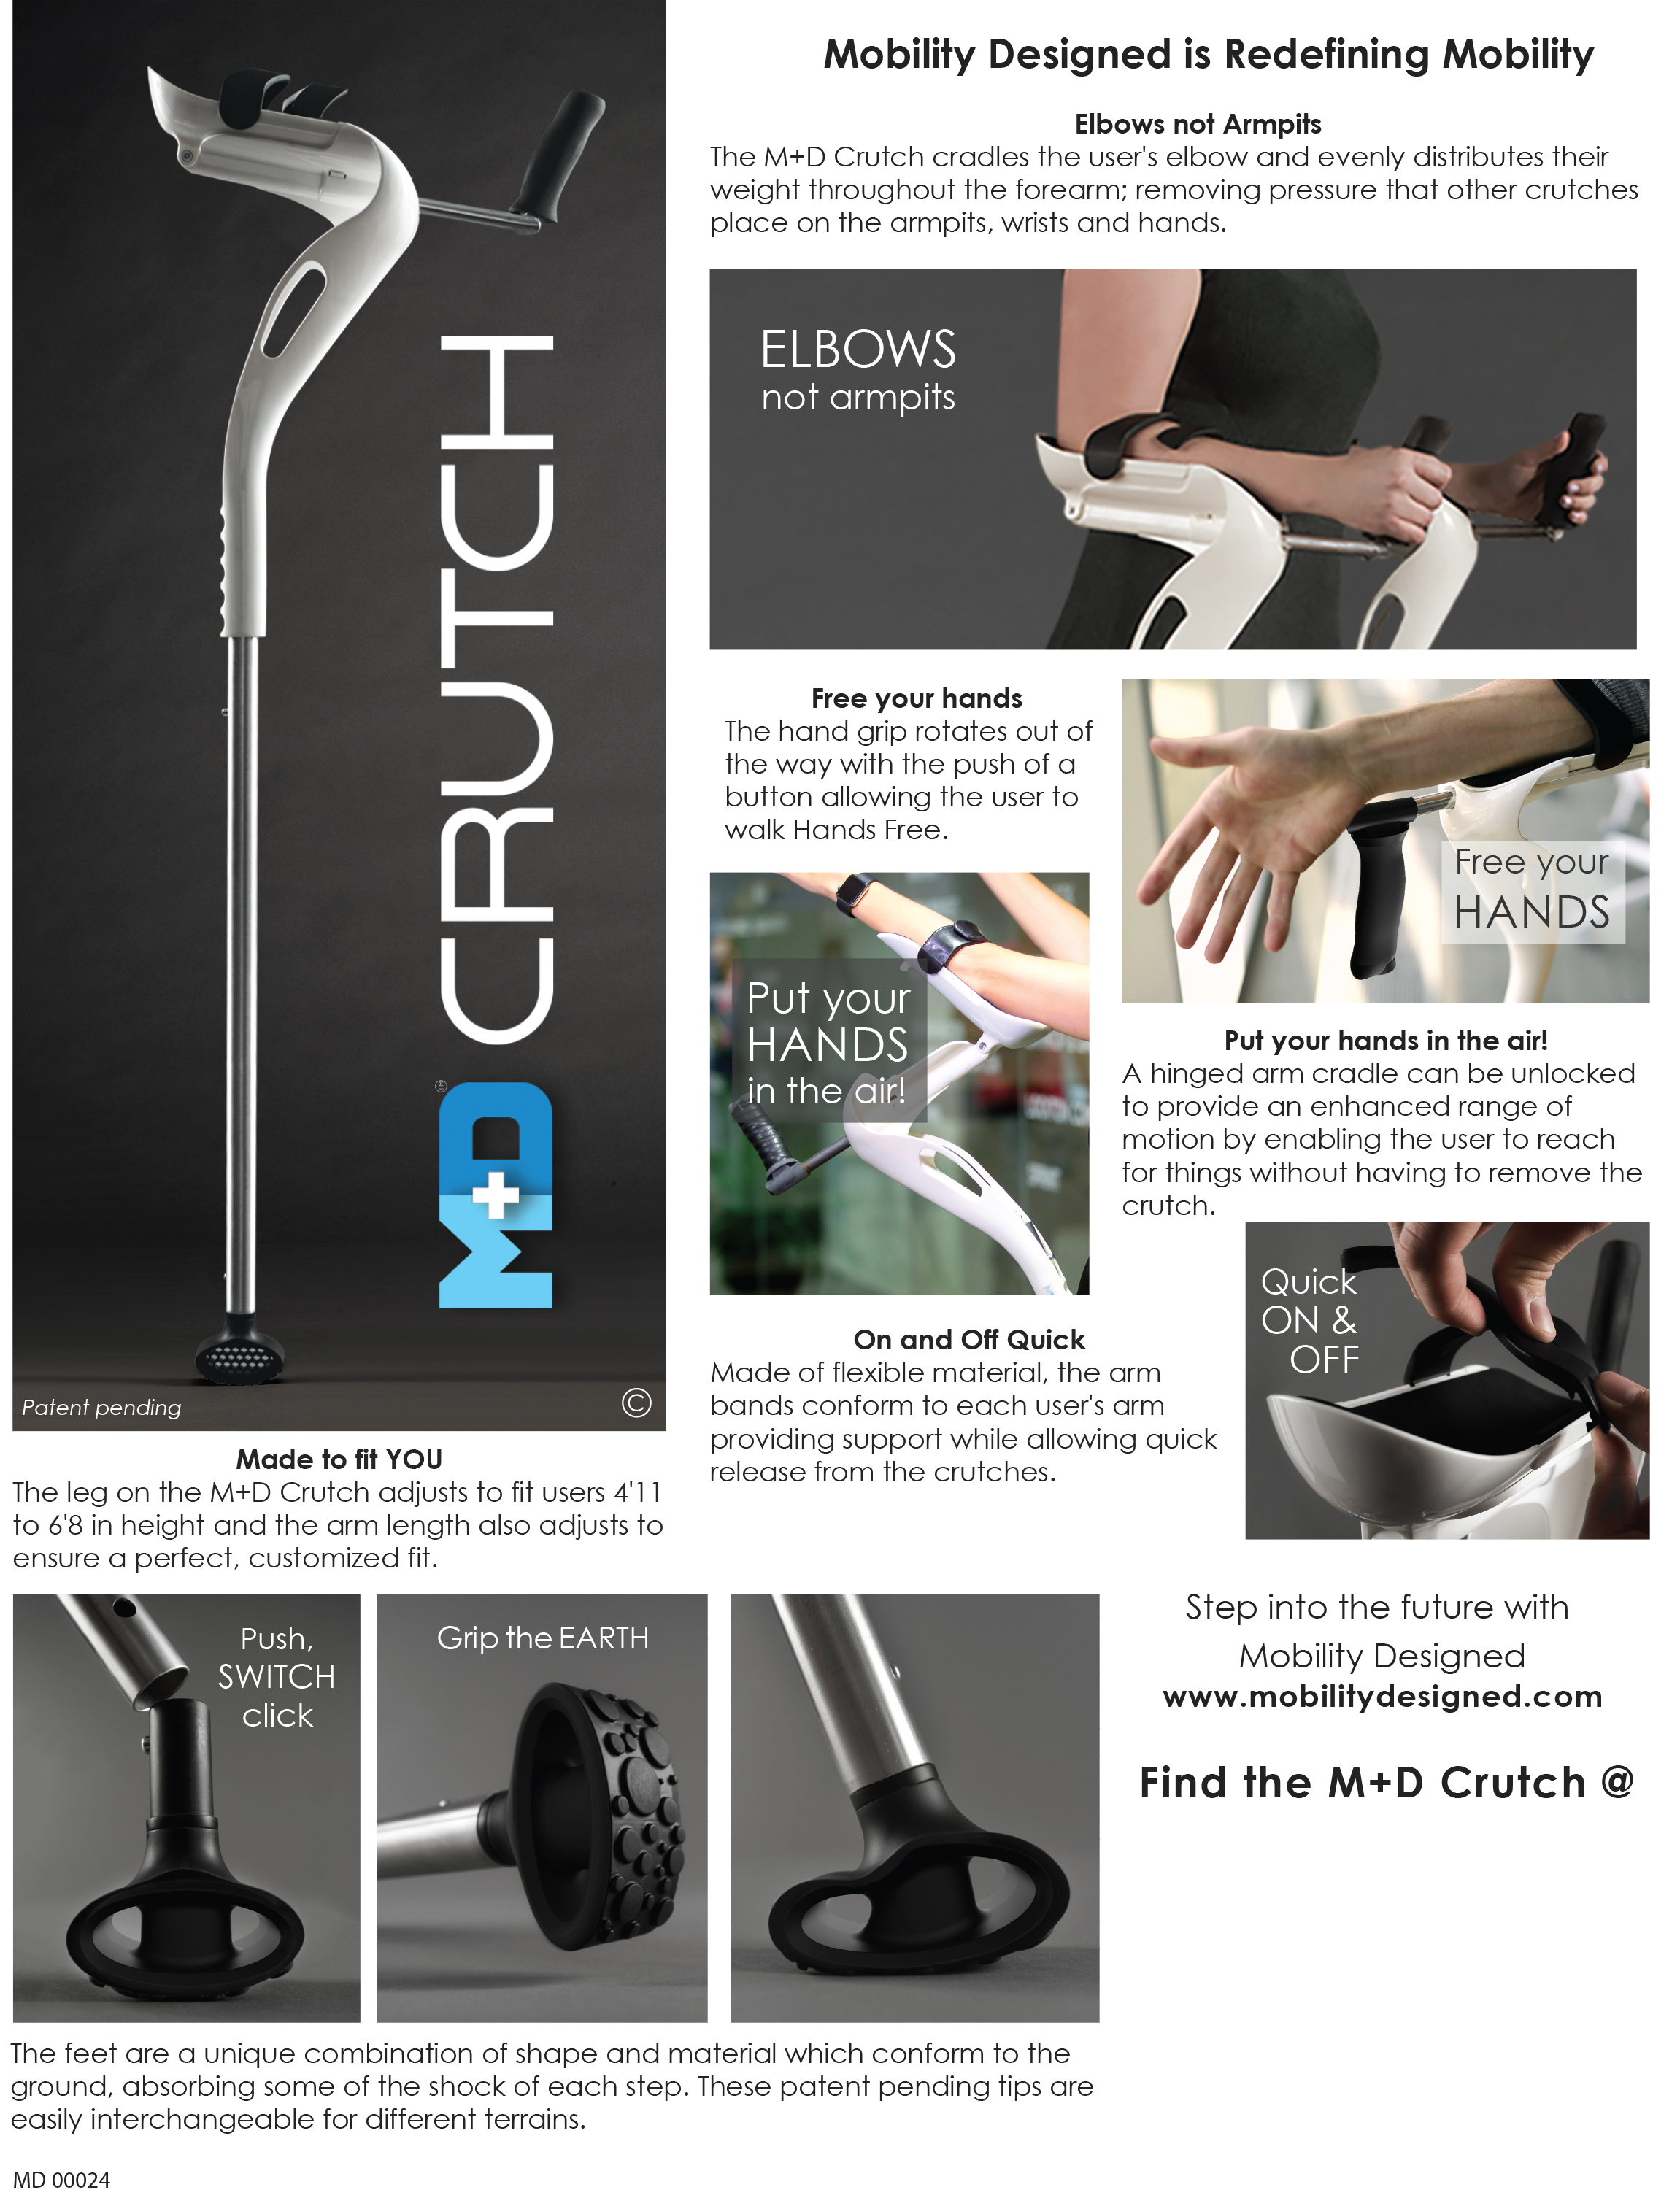 md-00024-m-d-crutch-flyer-for-retailers.jpg